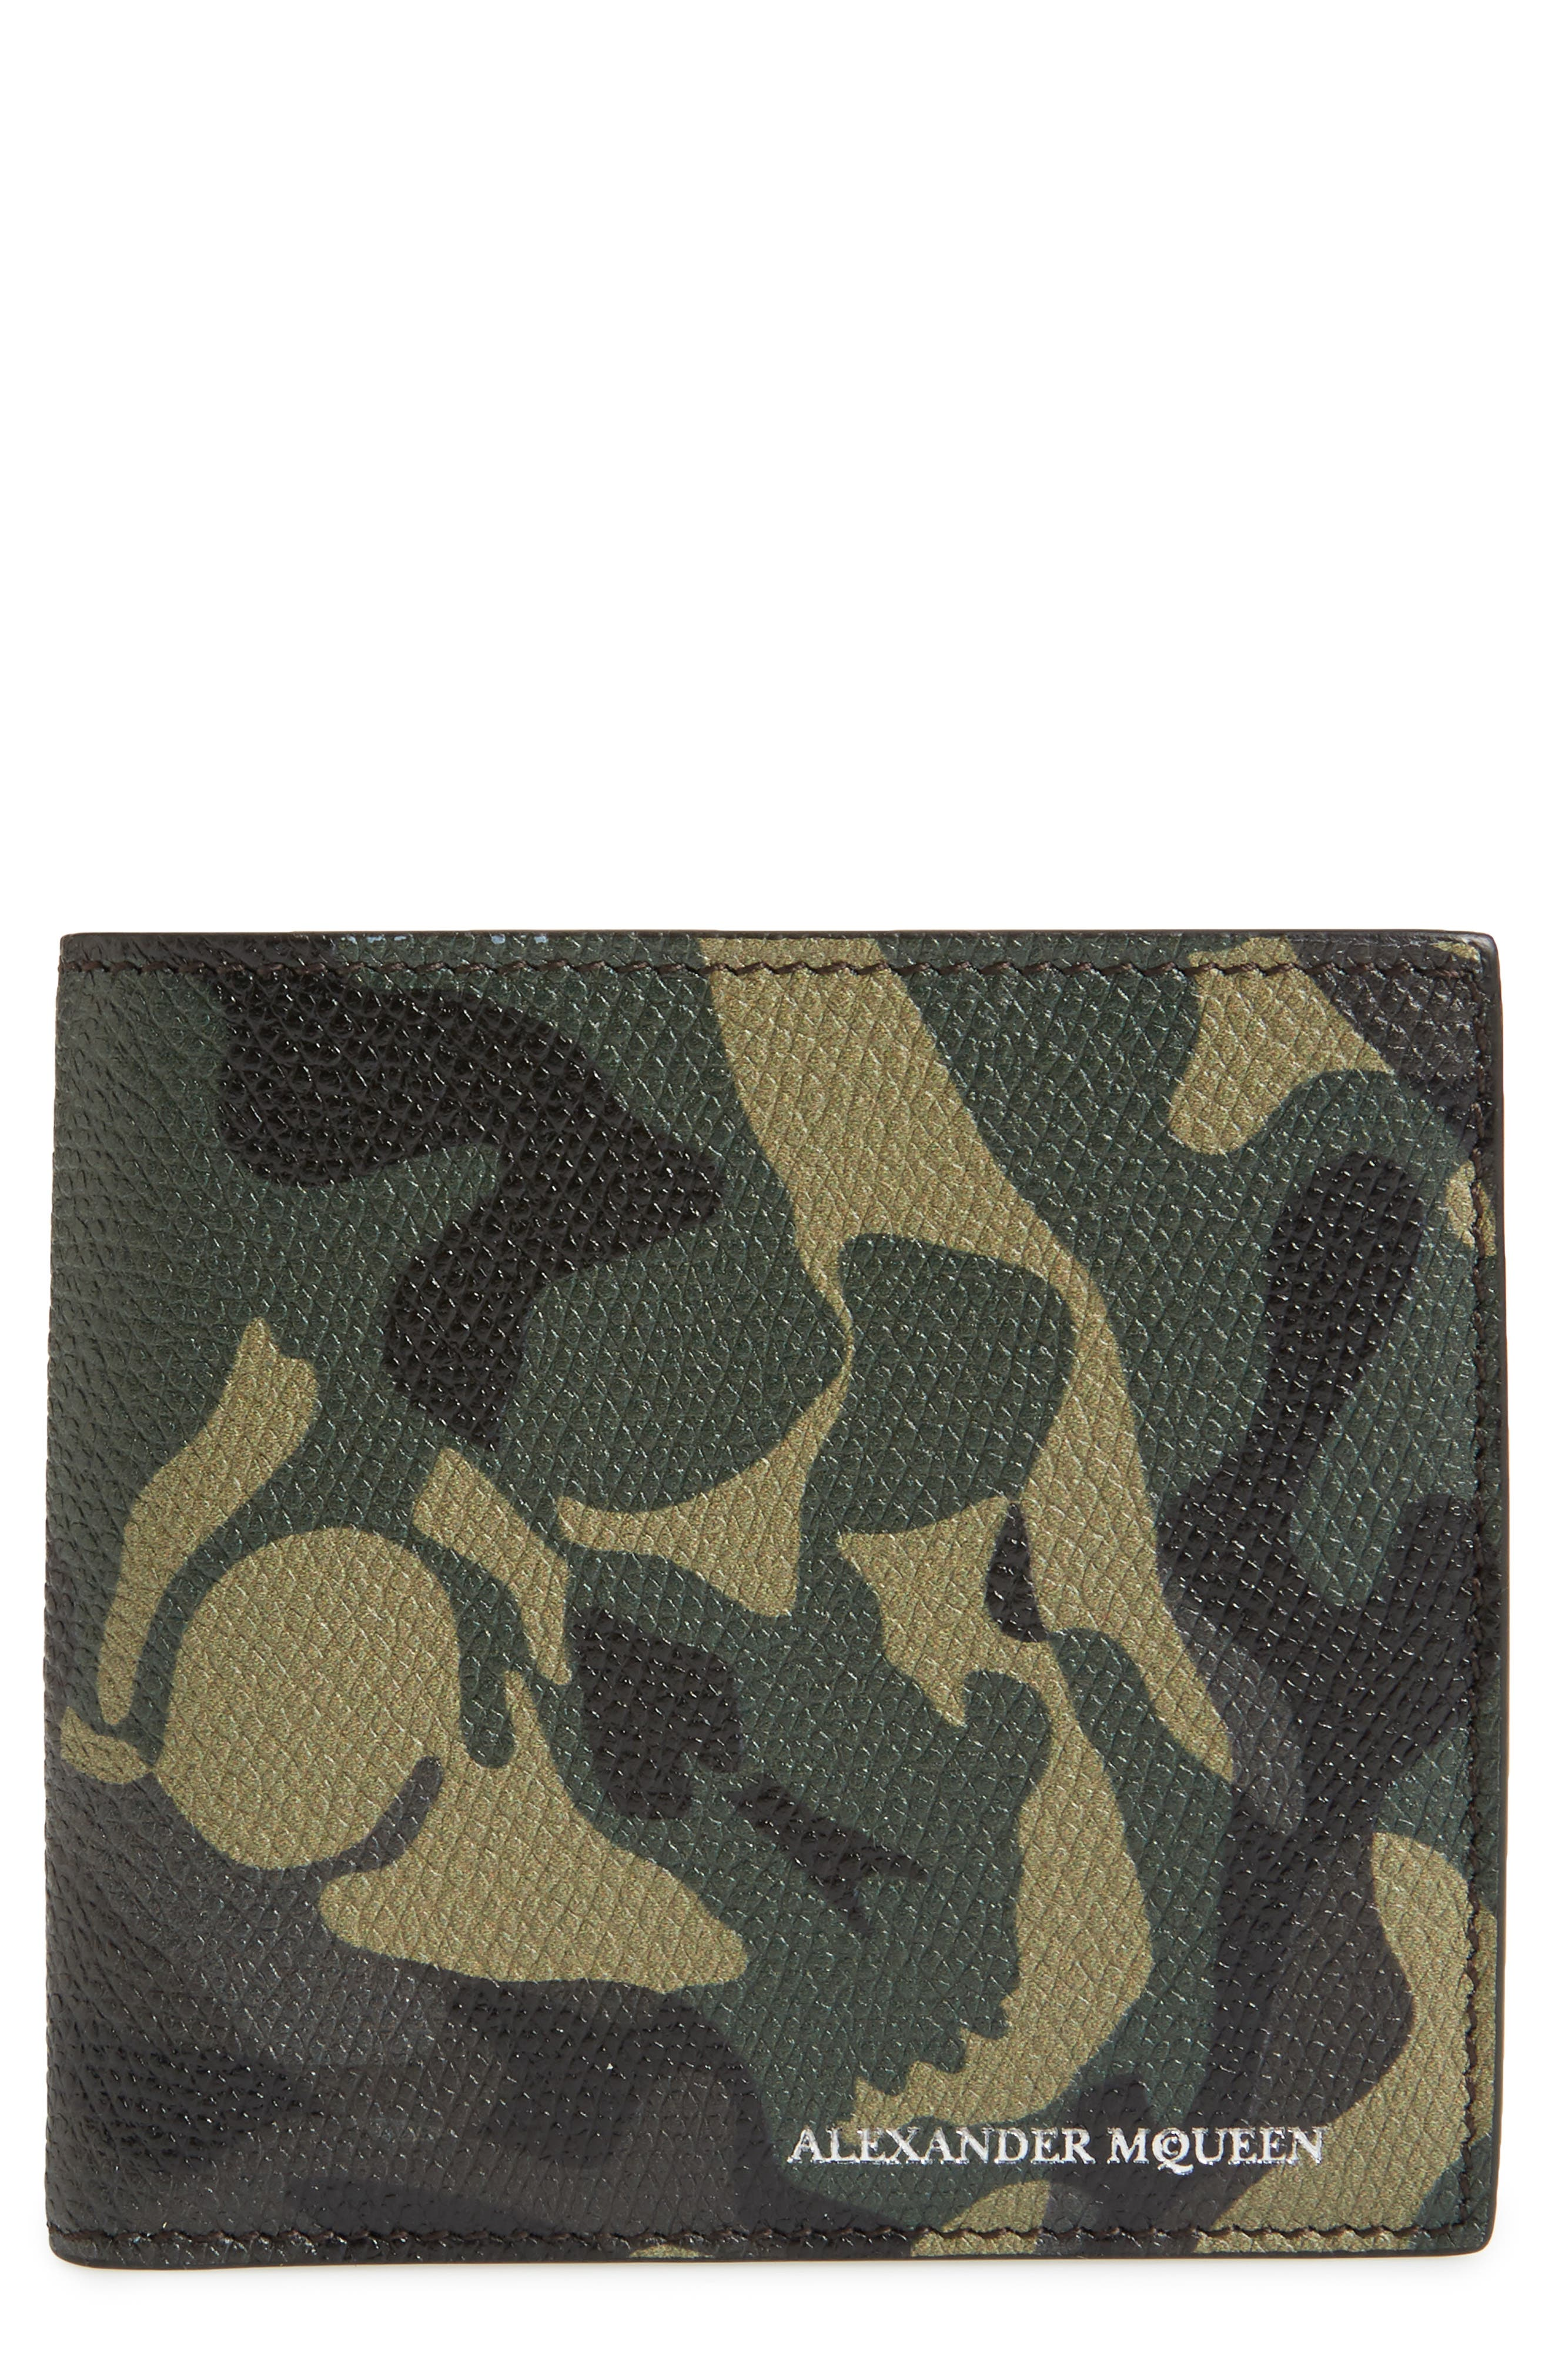 ALEXANDER MCQUEEN Camo Leather Billfold Wallet